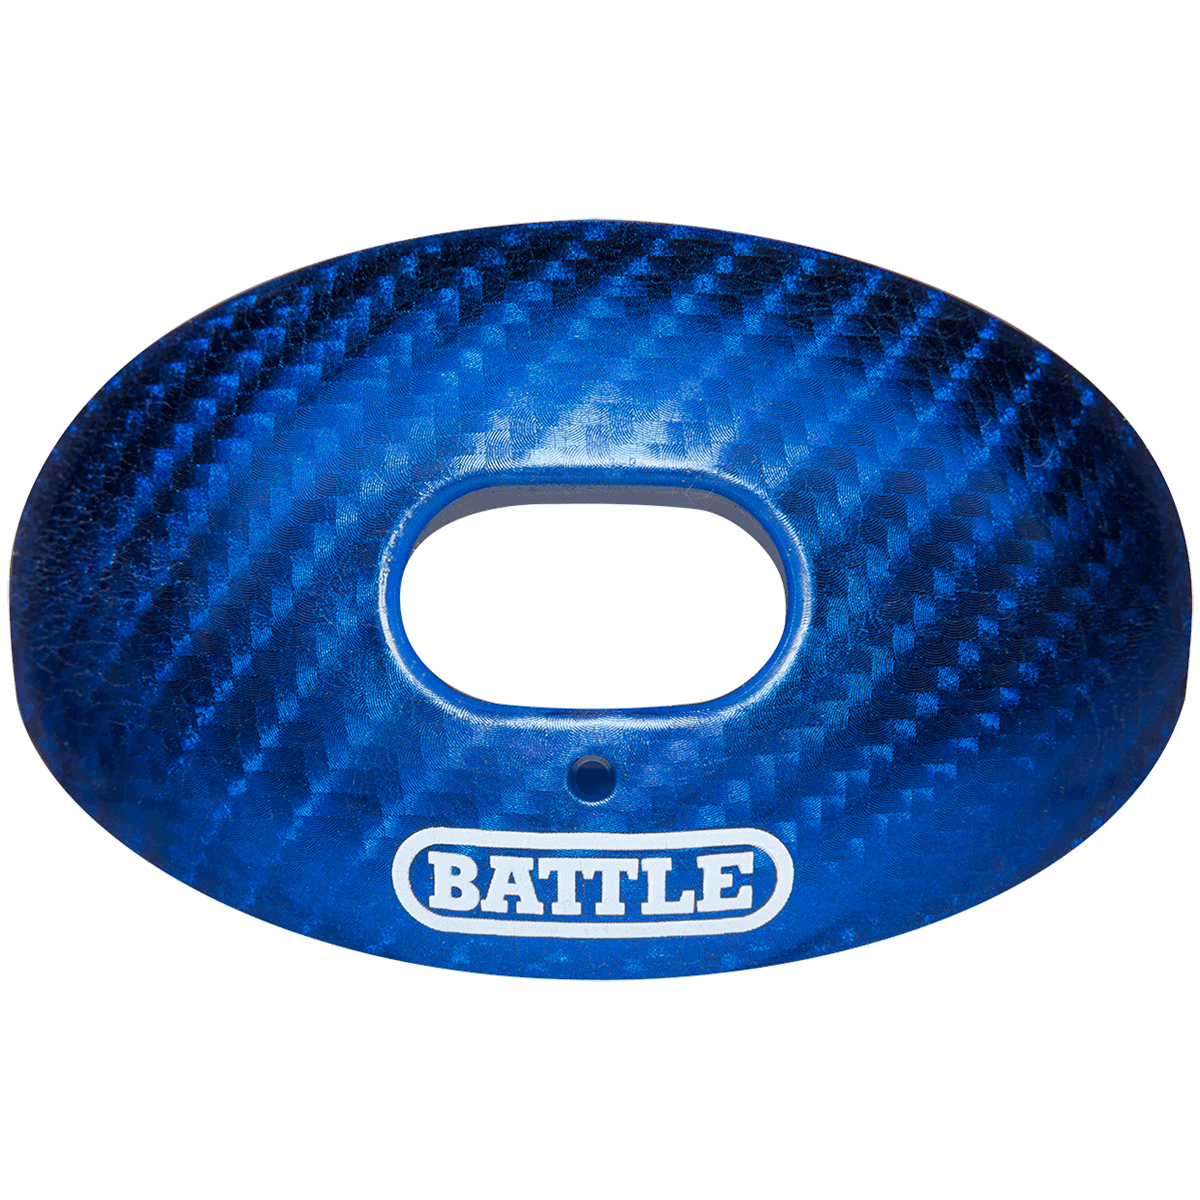 Battle Sports Science Carbon Chrome Oxygen Lip Protector Mouthguard with Strap